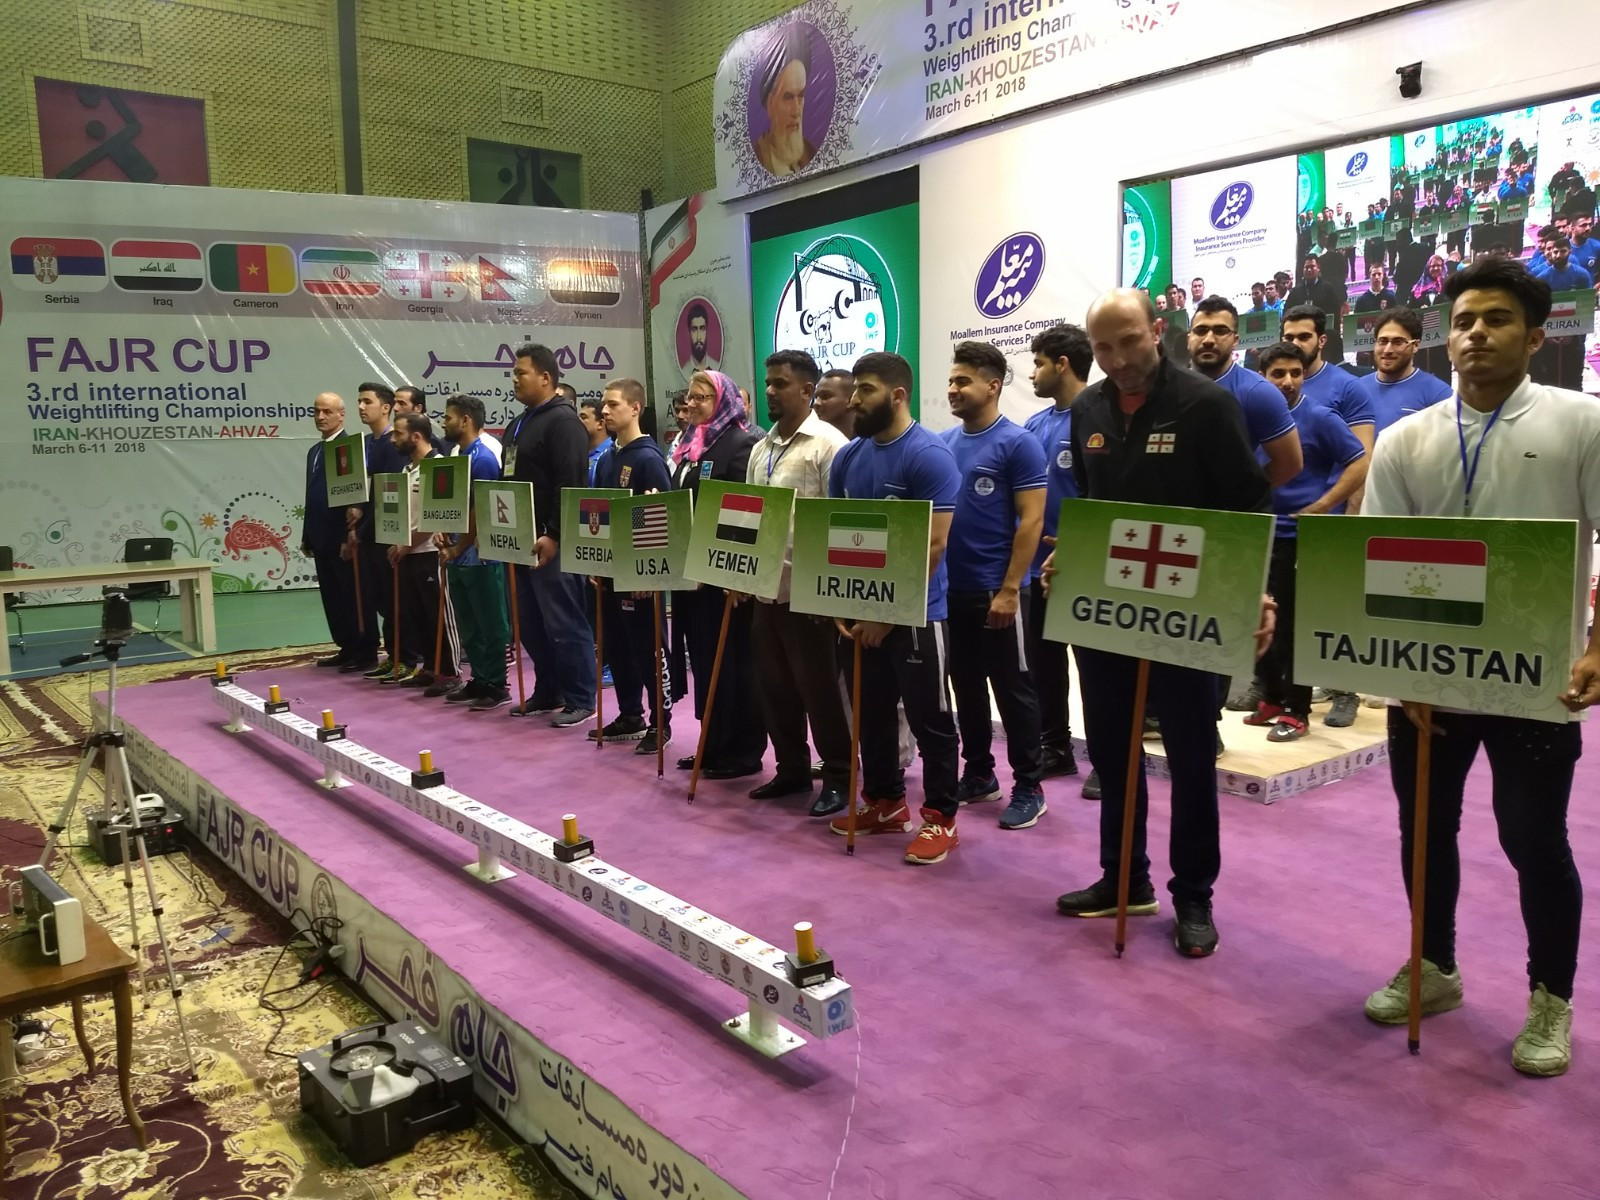 The Fajr Cup opened in Iran today ©Brian Oliver